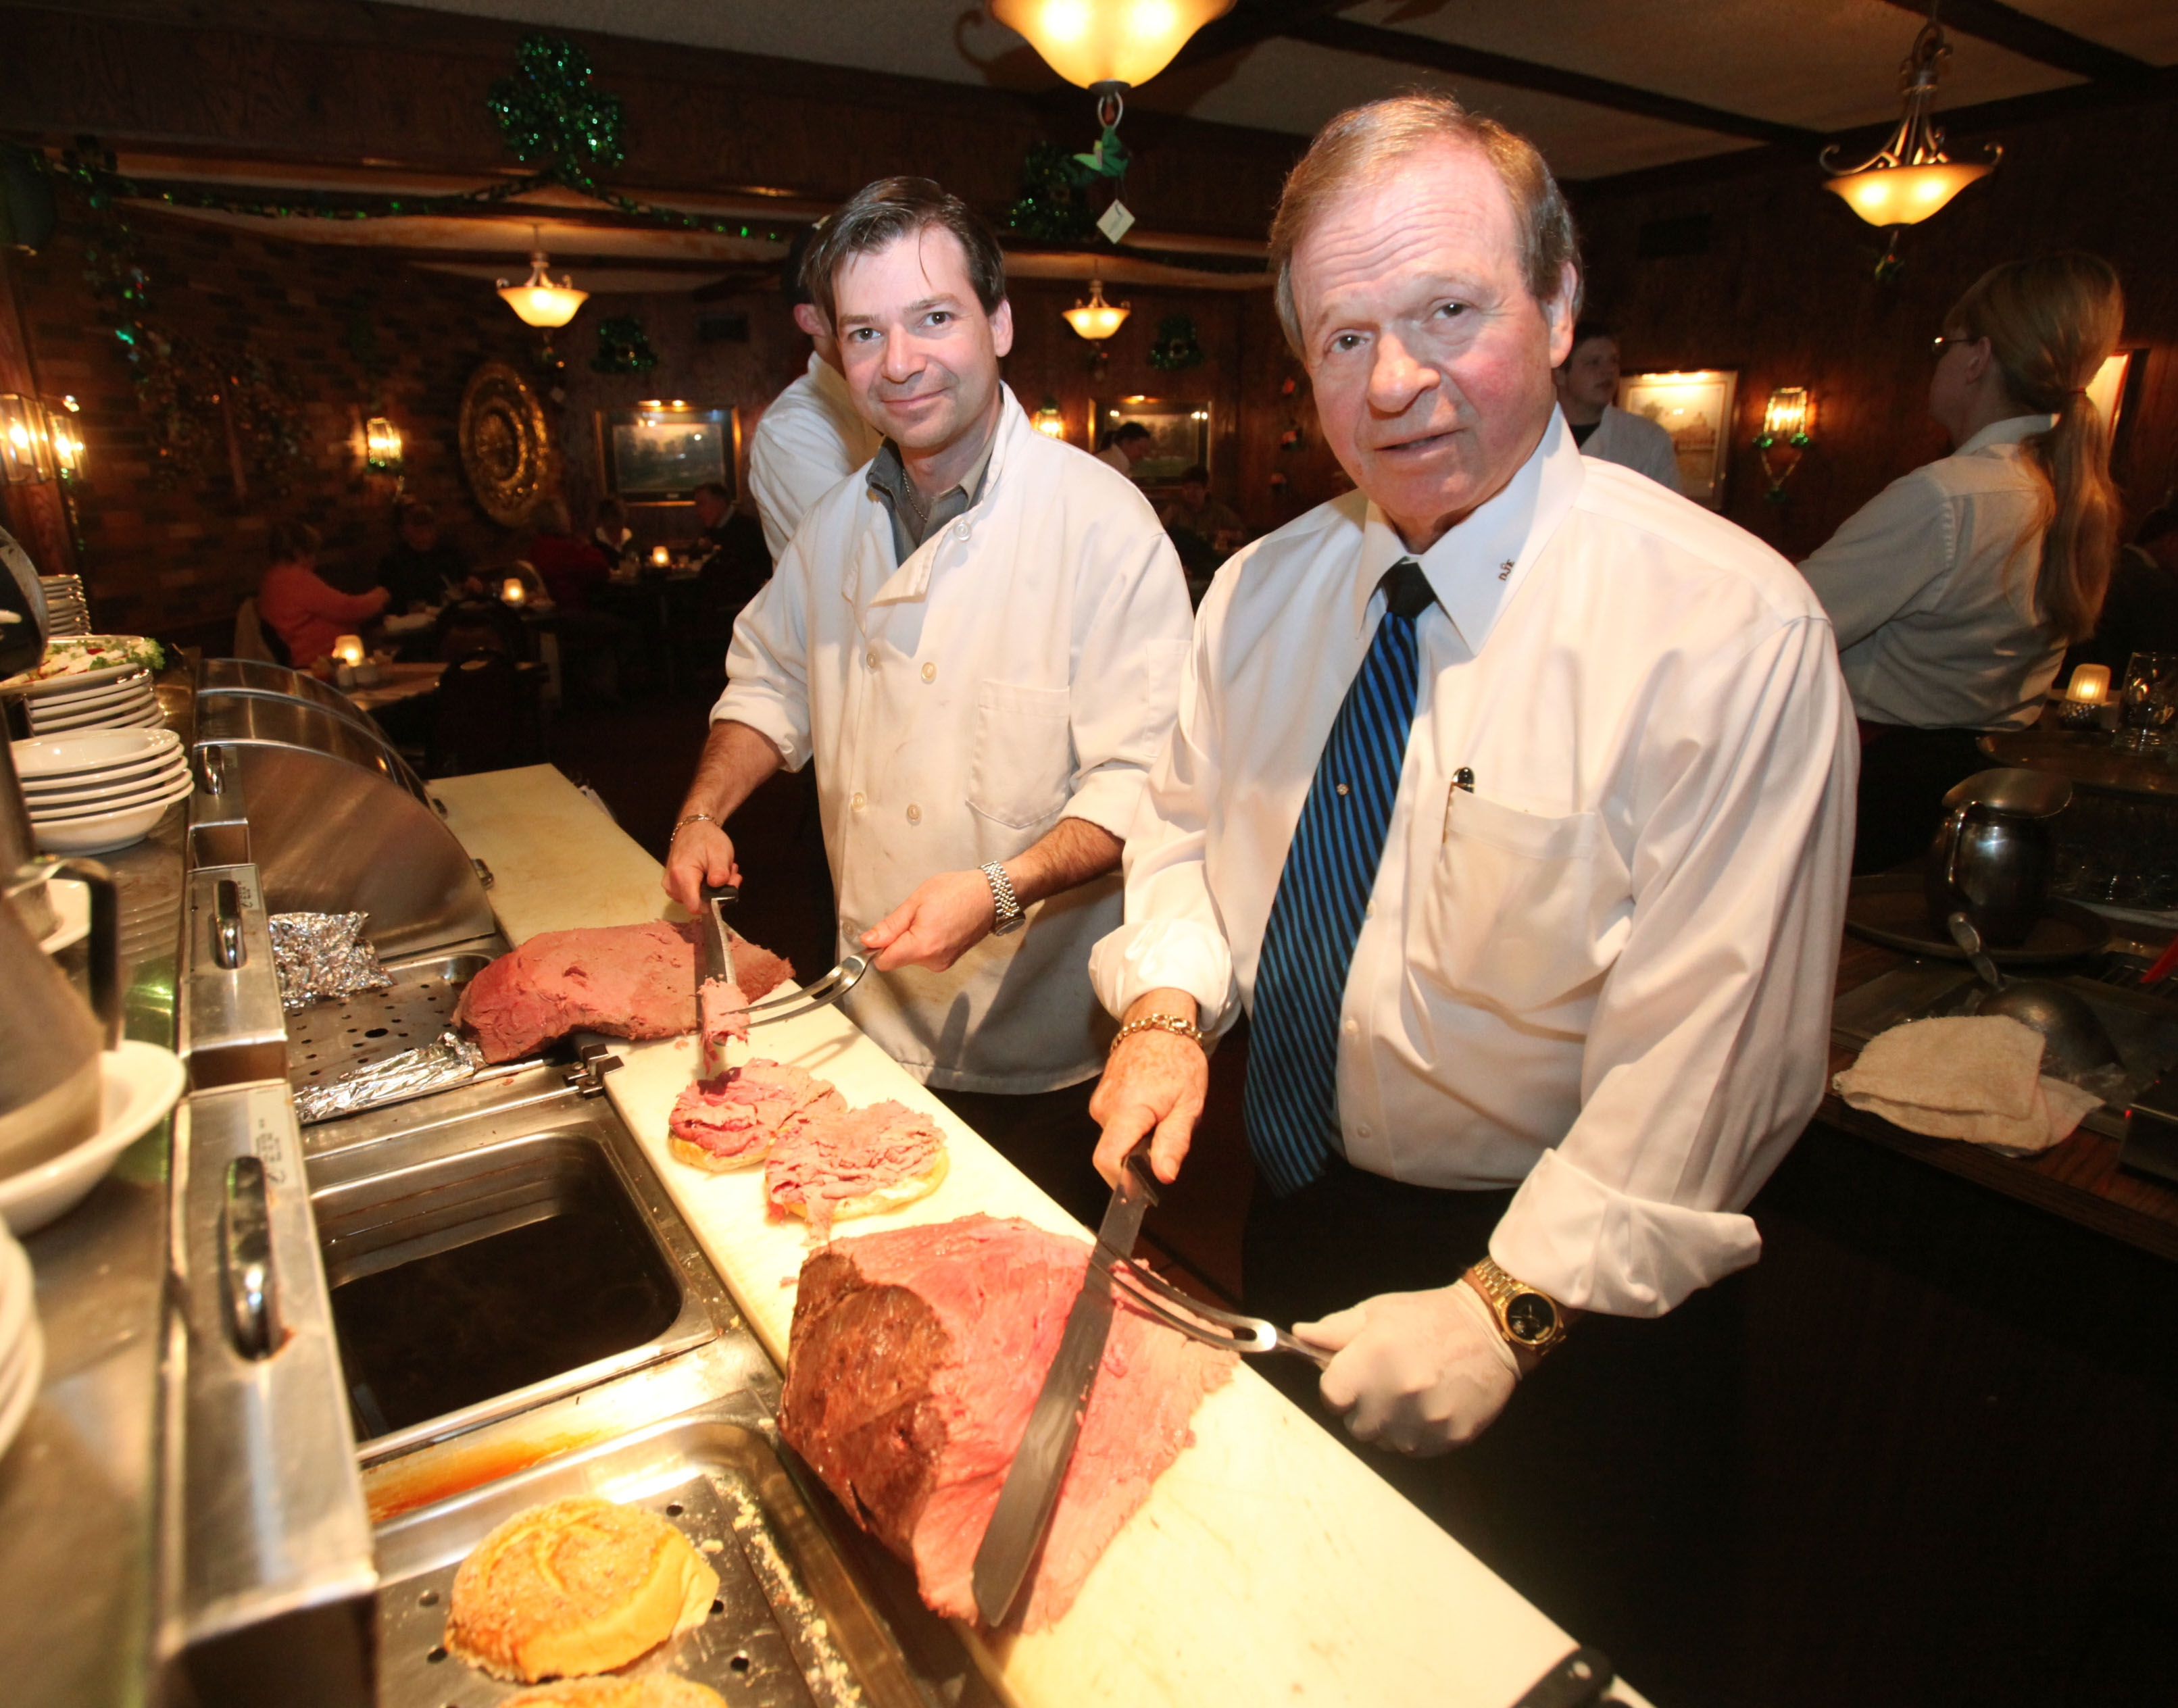 Eckl's Restaurant in Orchard Park is closing on   Sept. 26. Owner Dale Eckl, right, and his son Dale, Jr. cut  roast beef sandwiches in this photo from 2010. (News file photo)